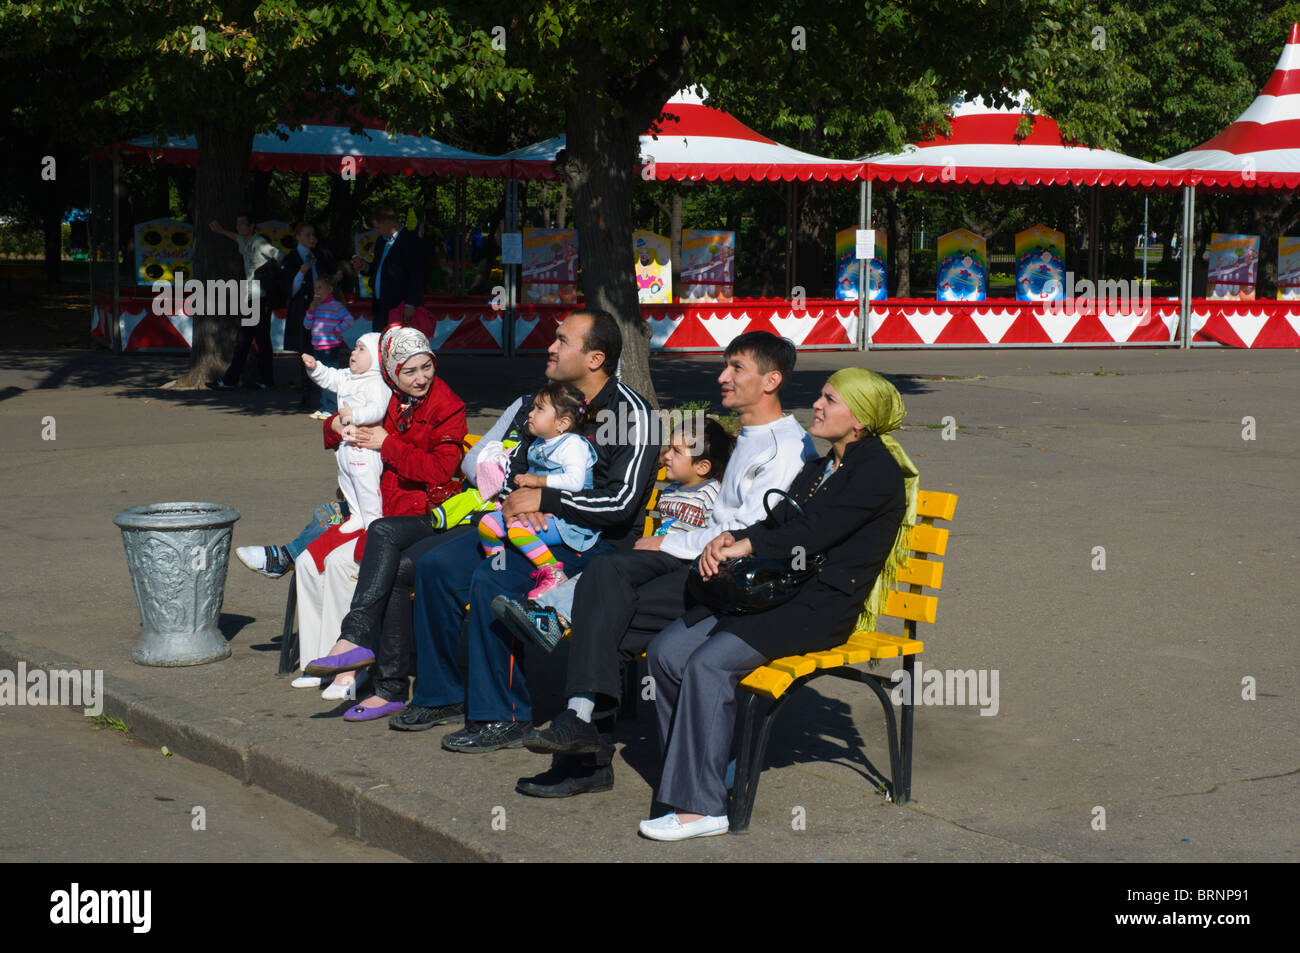 Muslim people watching people on a ride in Gorky Park central Moscow Russia Europe Stock Photo